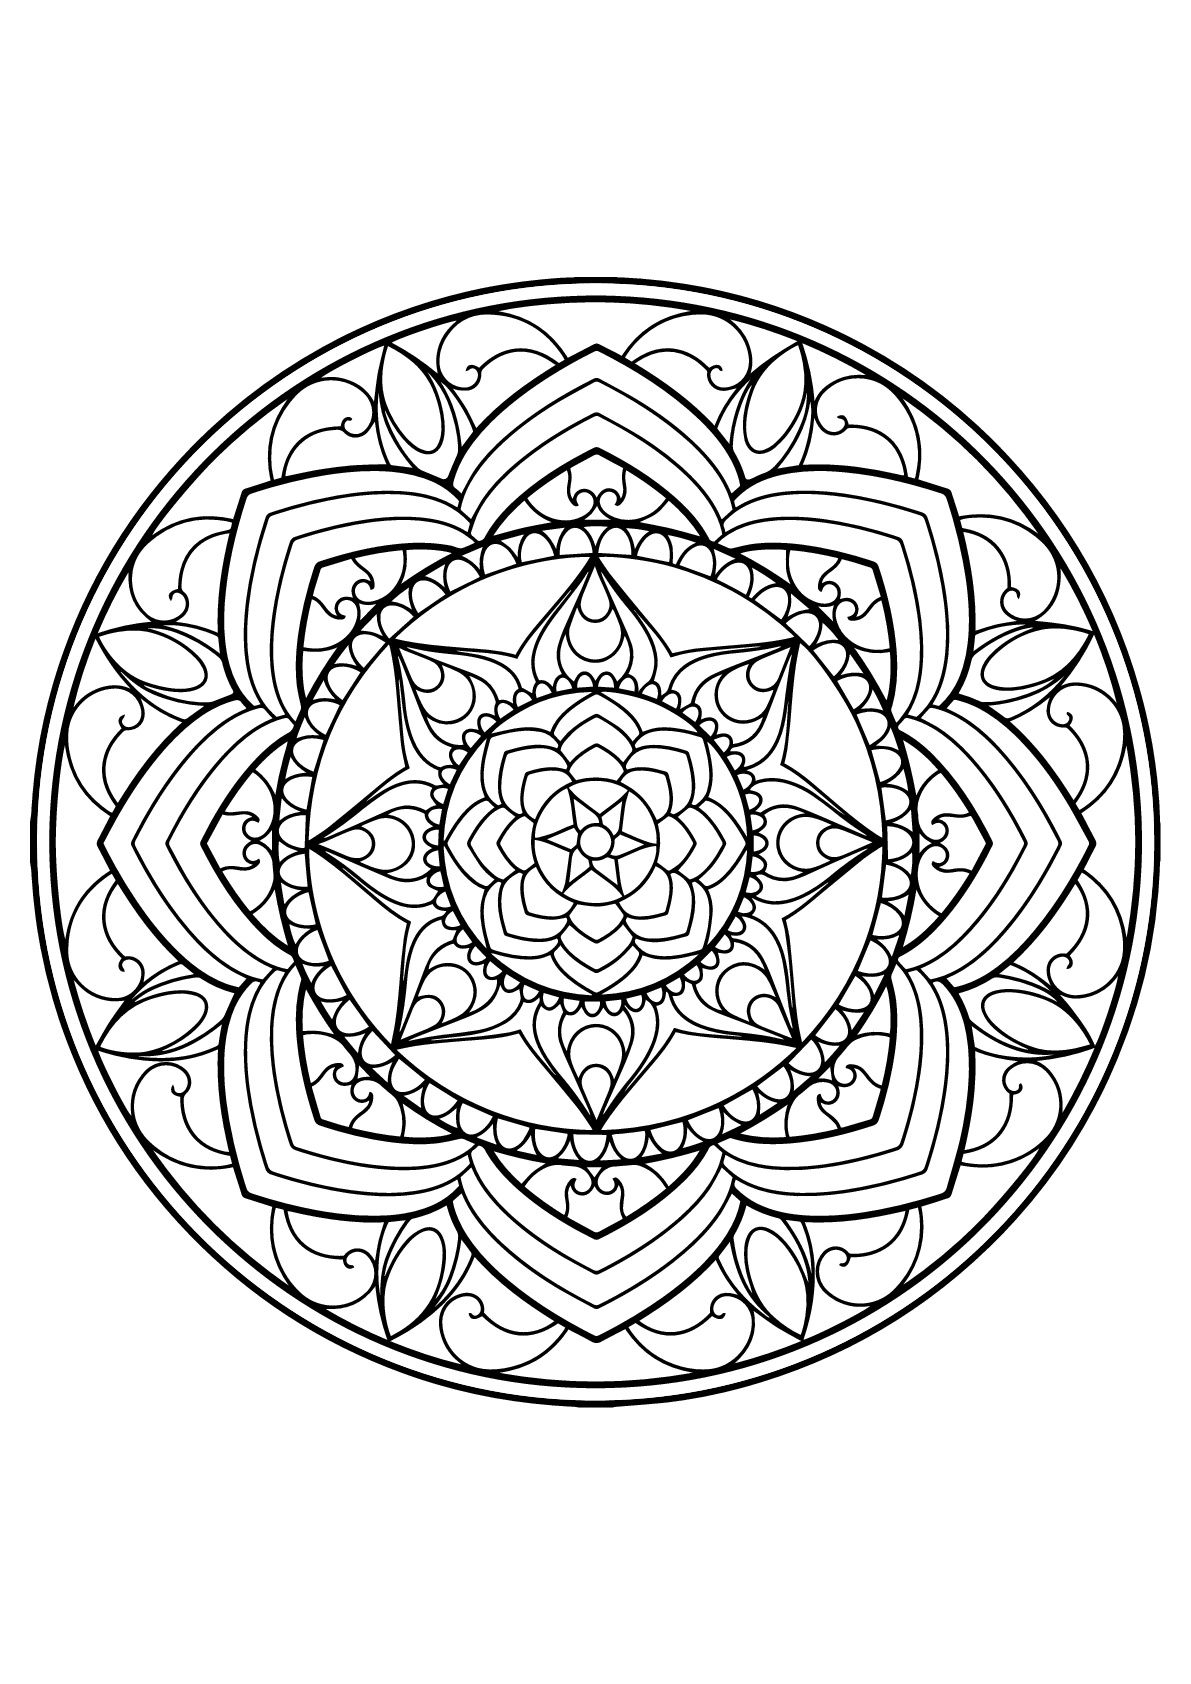 Here Are Difficult Mandalas Coloring Pages For Adults To Print For Free Mandala Is A San Printable Coloring Book Coloring Book Pages Mandala Coloring Pages